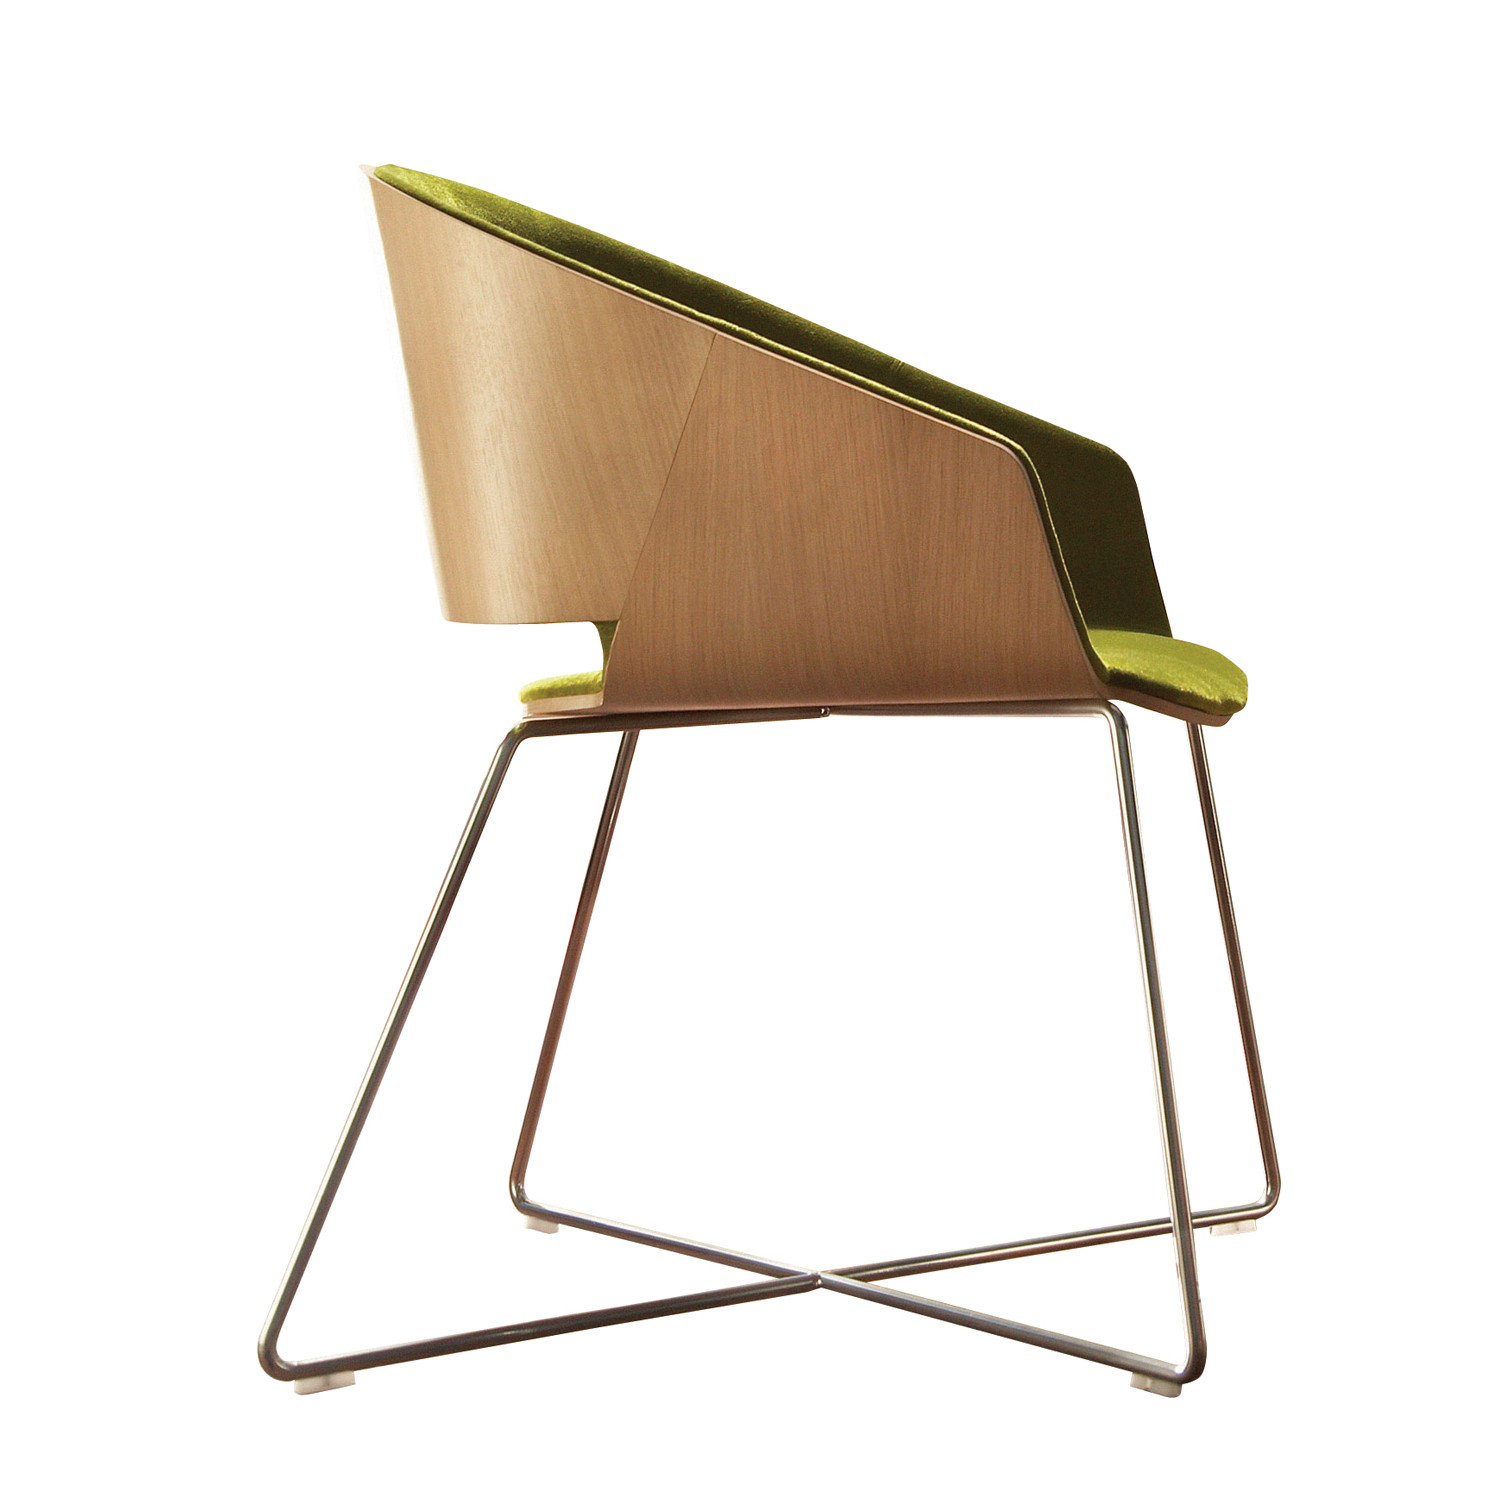 Halo Lounge Chair with Wire Base